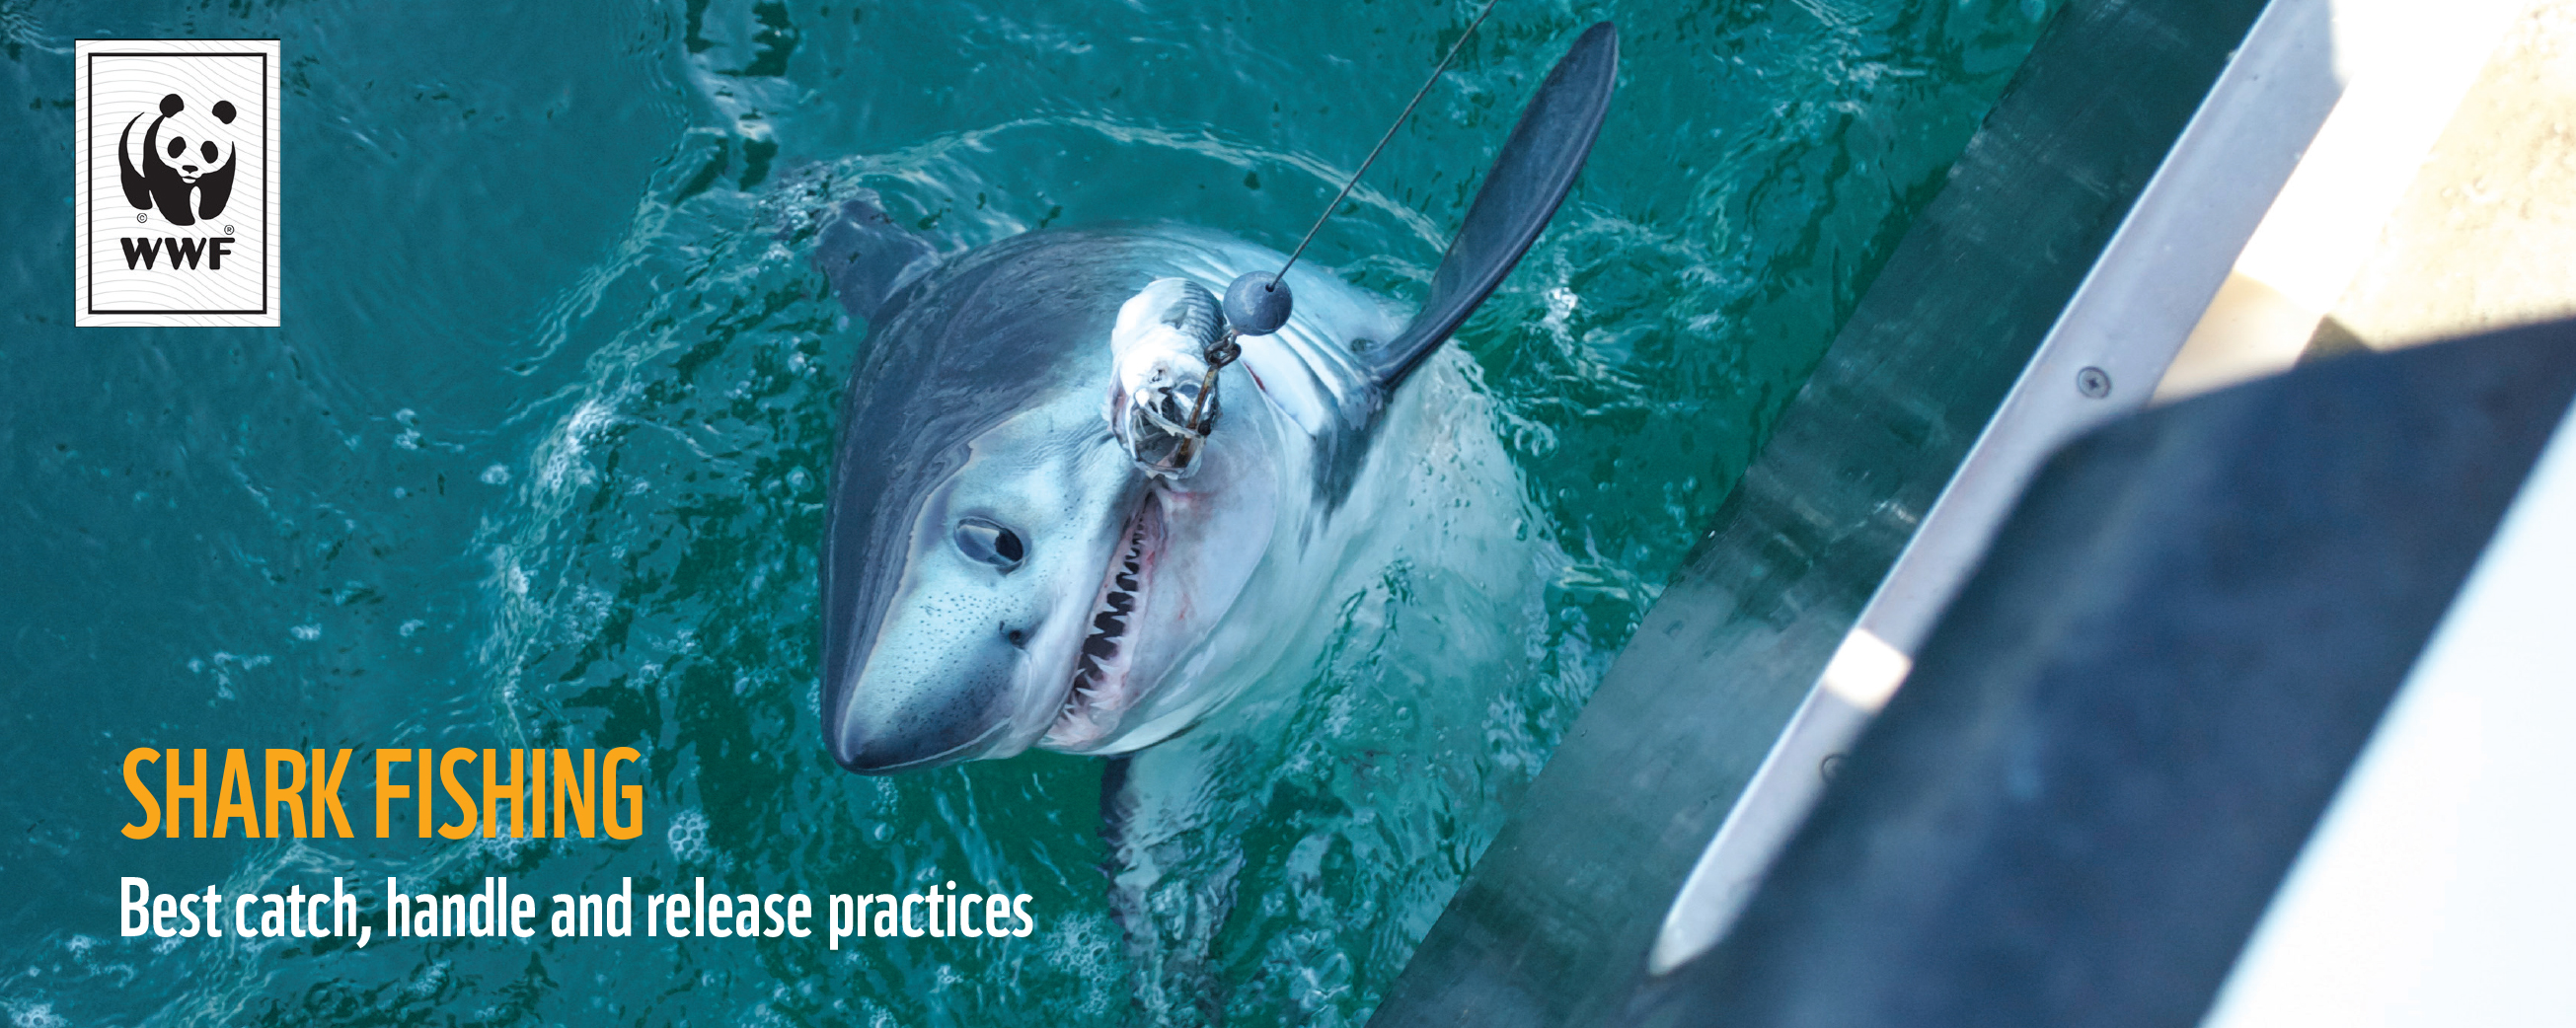 Shark Fishing: Best Catch, Handle and Release Practices